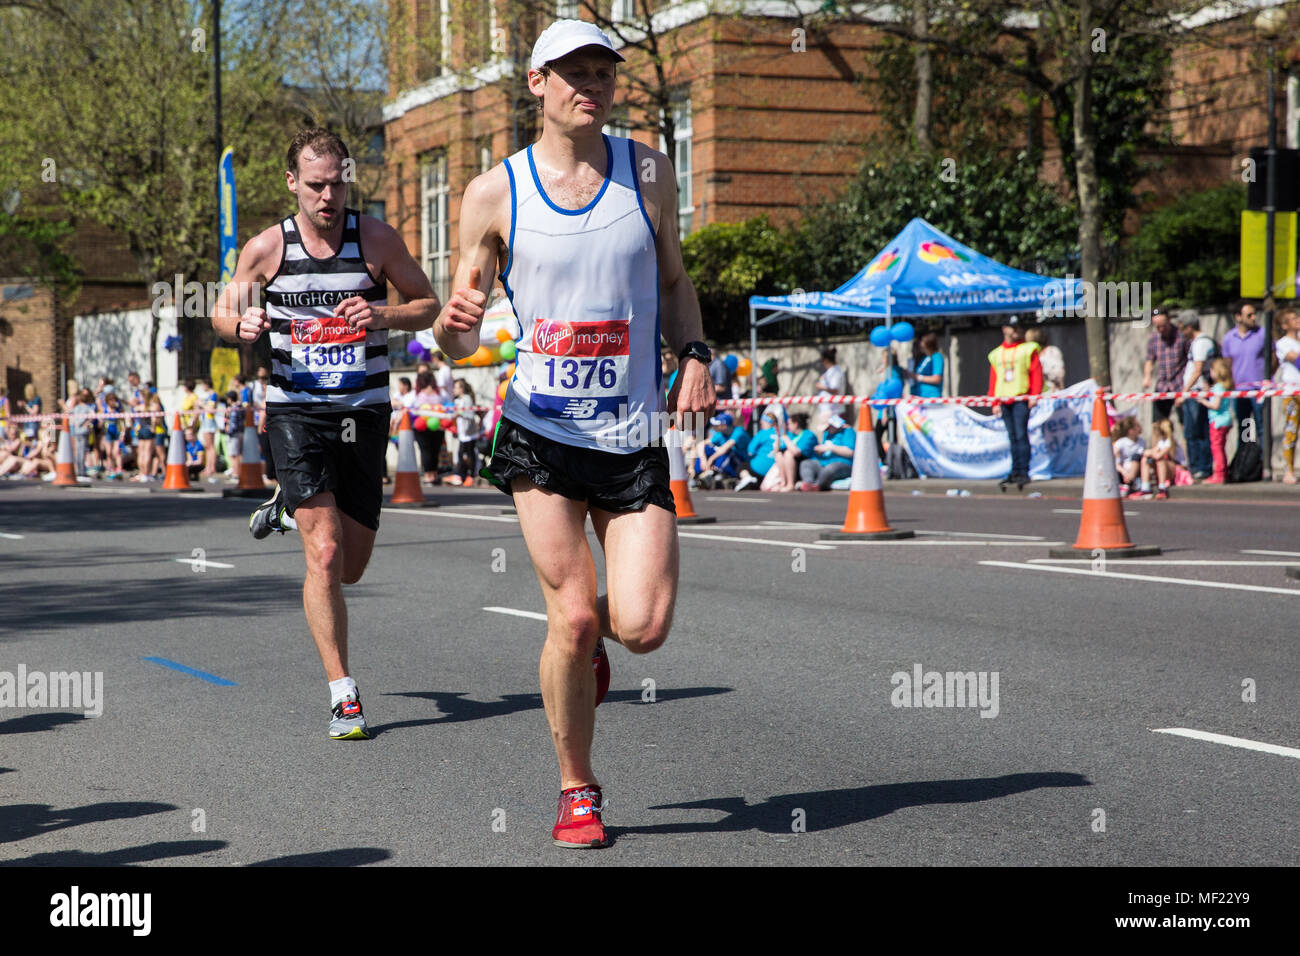 London, UK. 22nd April, 2018. Charles Harpur of Mid Essex Casuals competes in the 2018 Virgin Money London Marathon. The 38th edition of the race was the hottest on record with a temperature of 24.1C recorded in St James's Park. - Stock Image